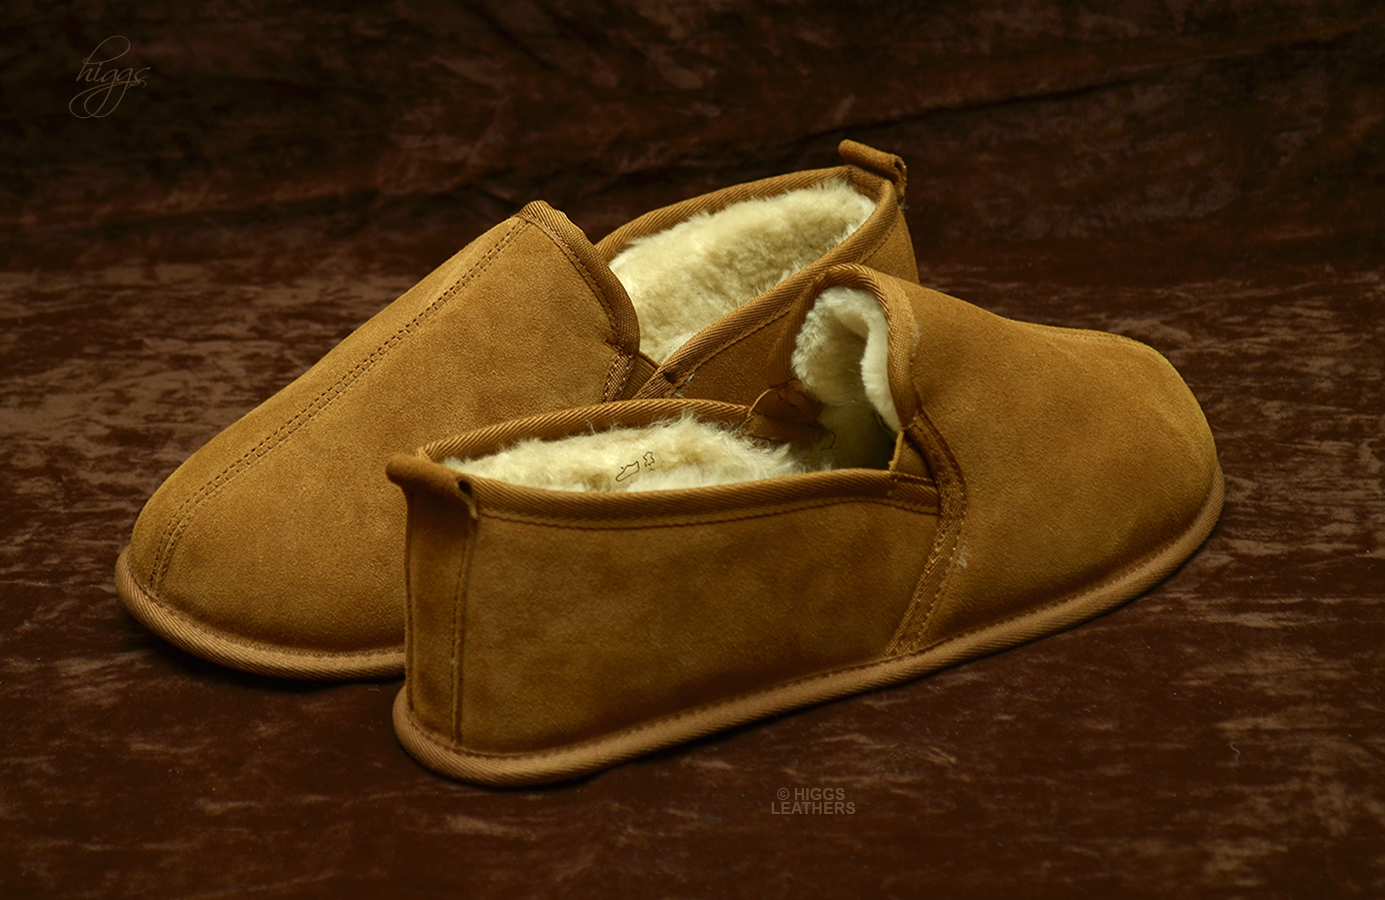 Higgs Leathers {Sizes 6 to 13}   Ambleside (men's Sheepskin slippers) Pamper your tootsies!